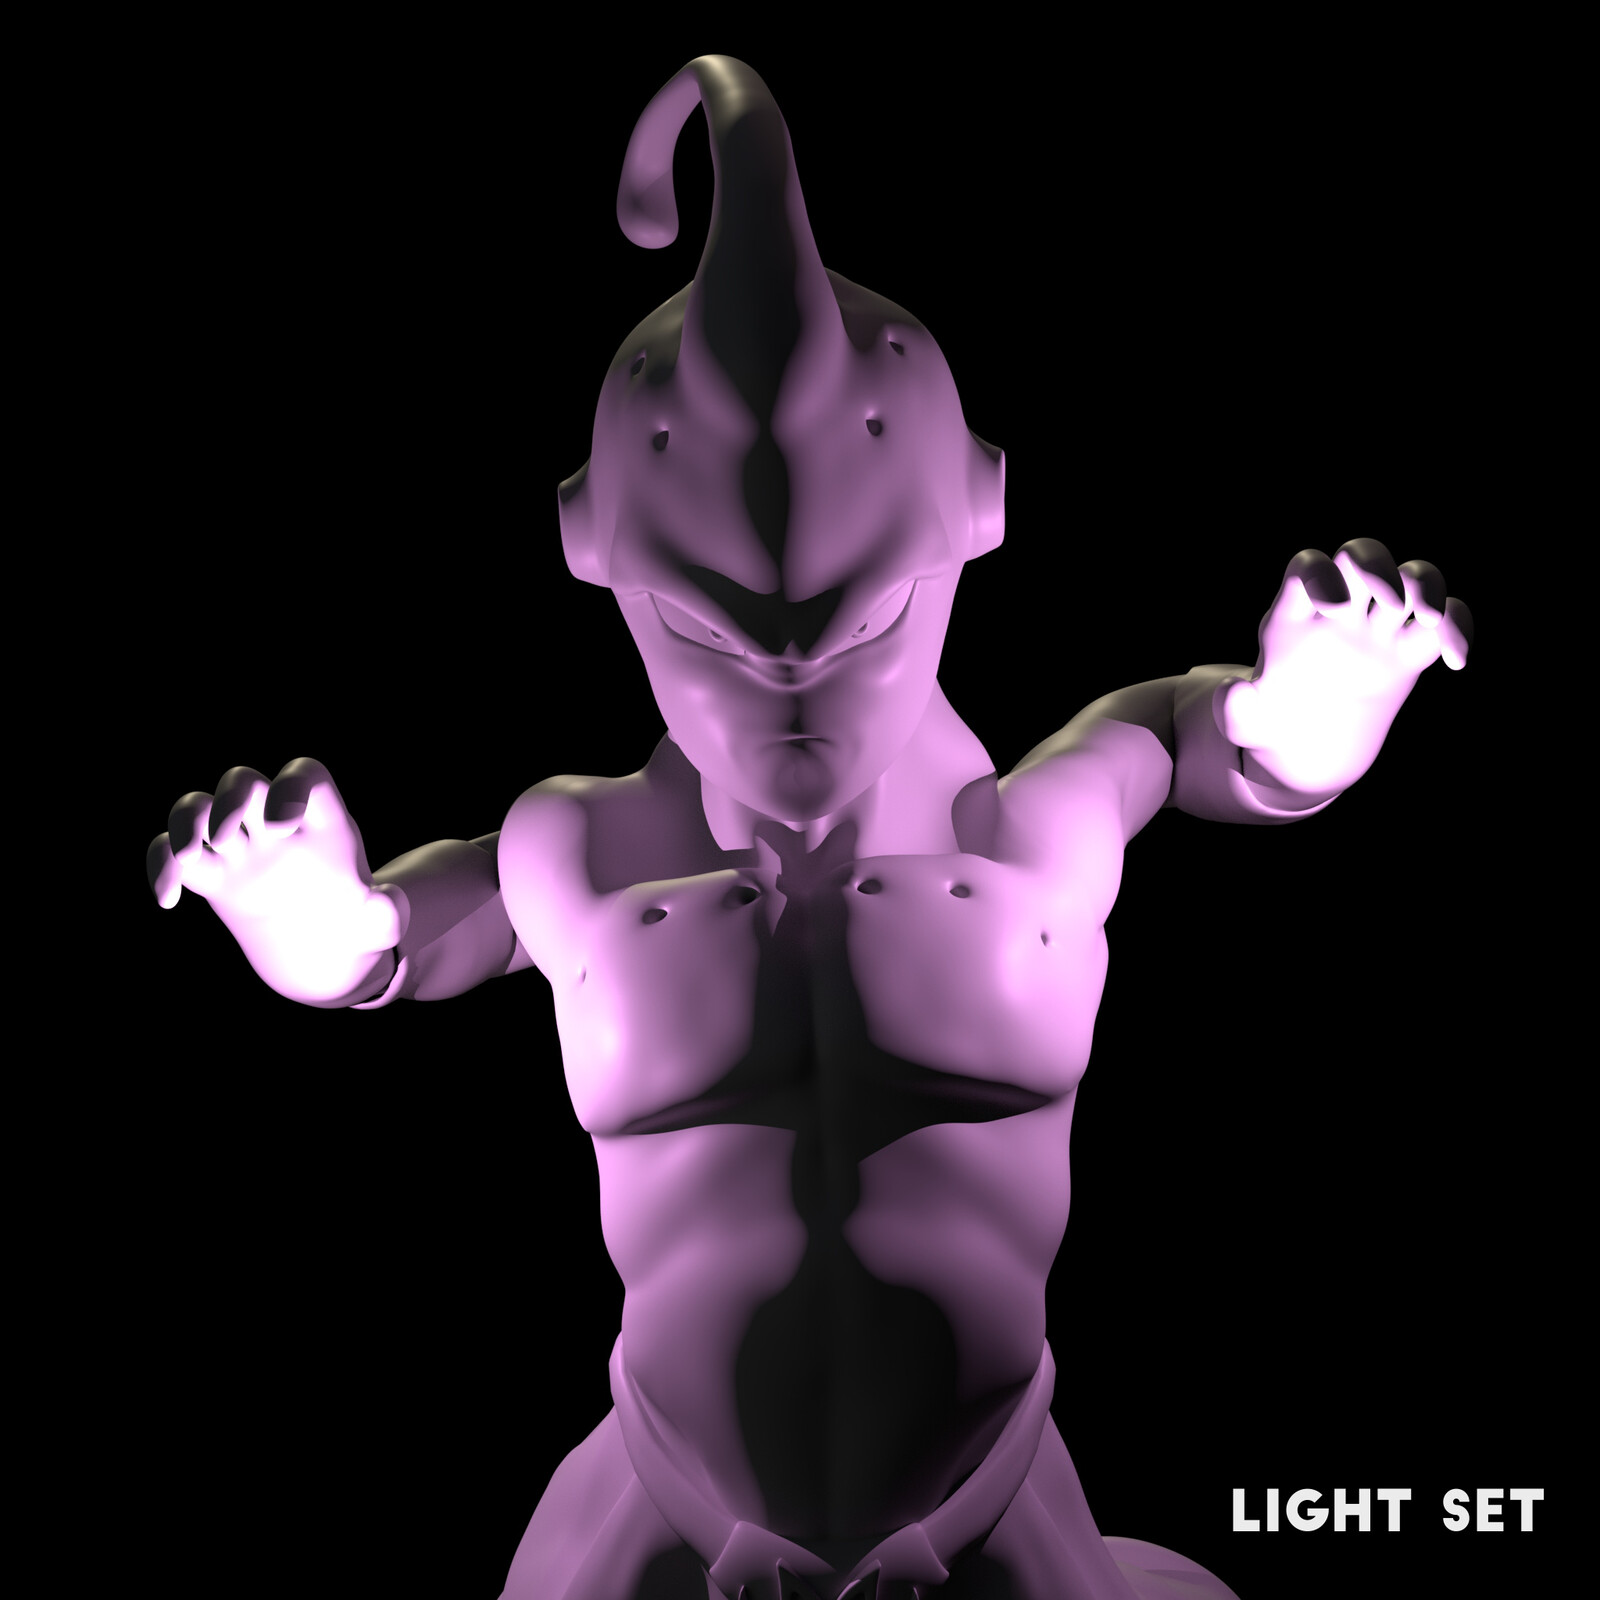 Light Set used in the Render